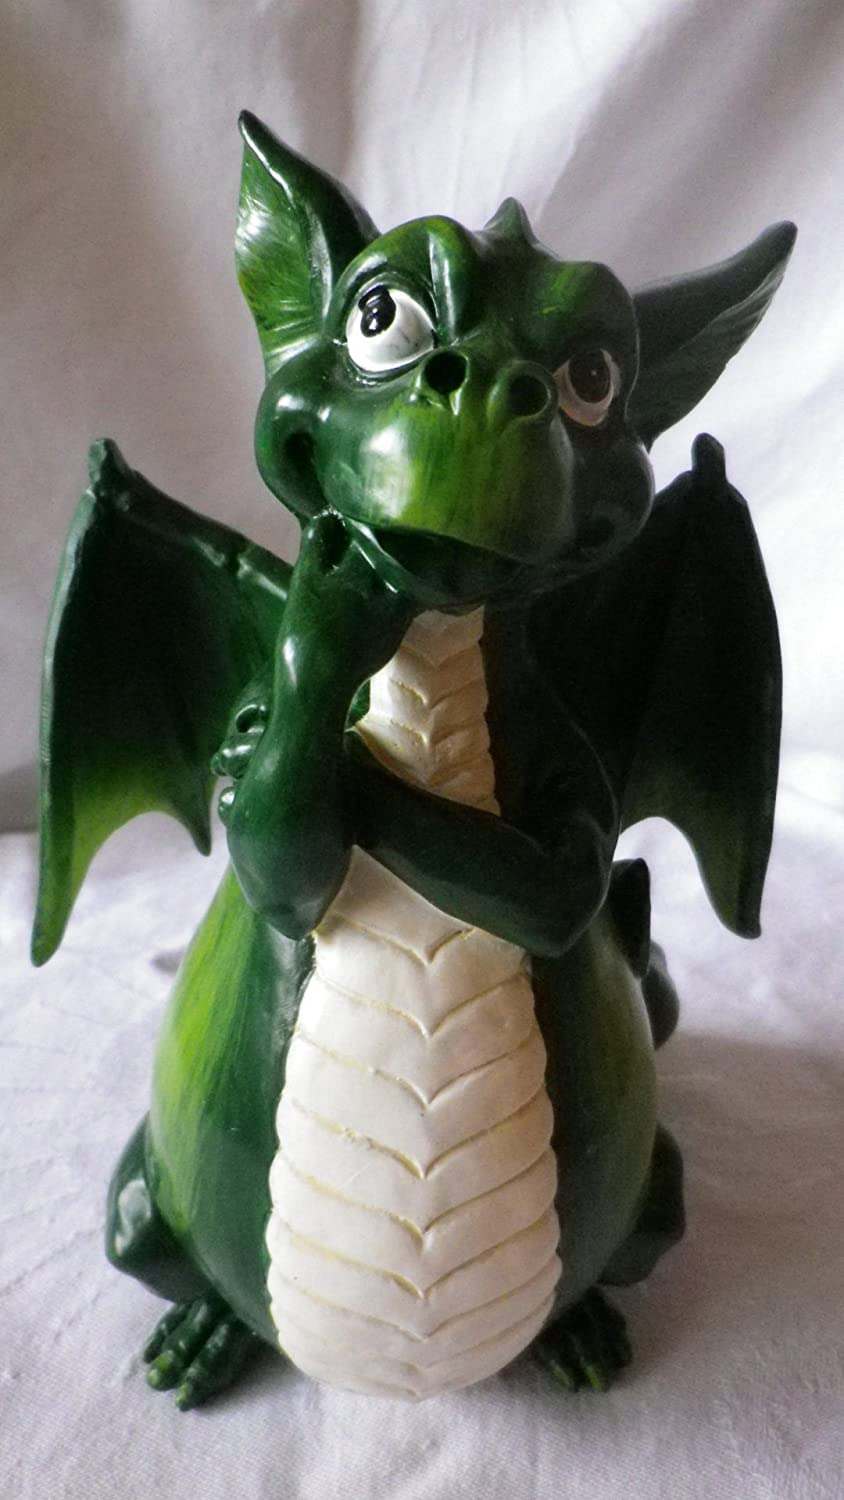 15.5cm Cute Dragon Incense Burner Puckator DRG276